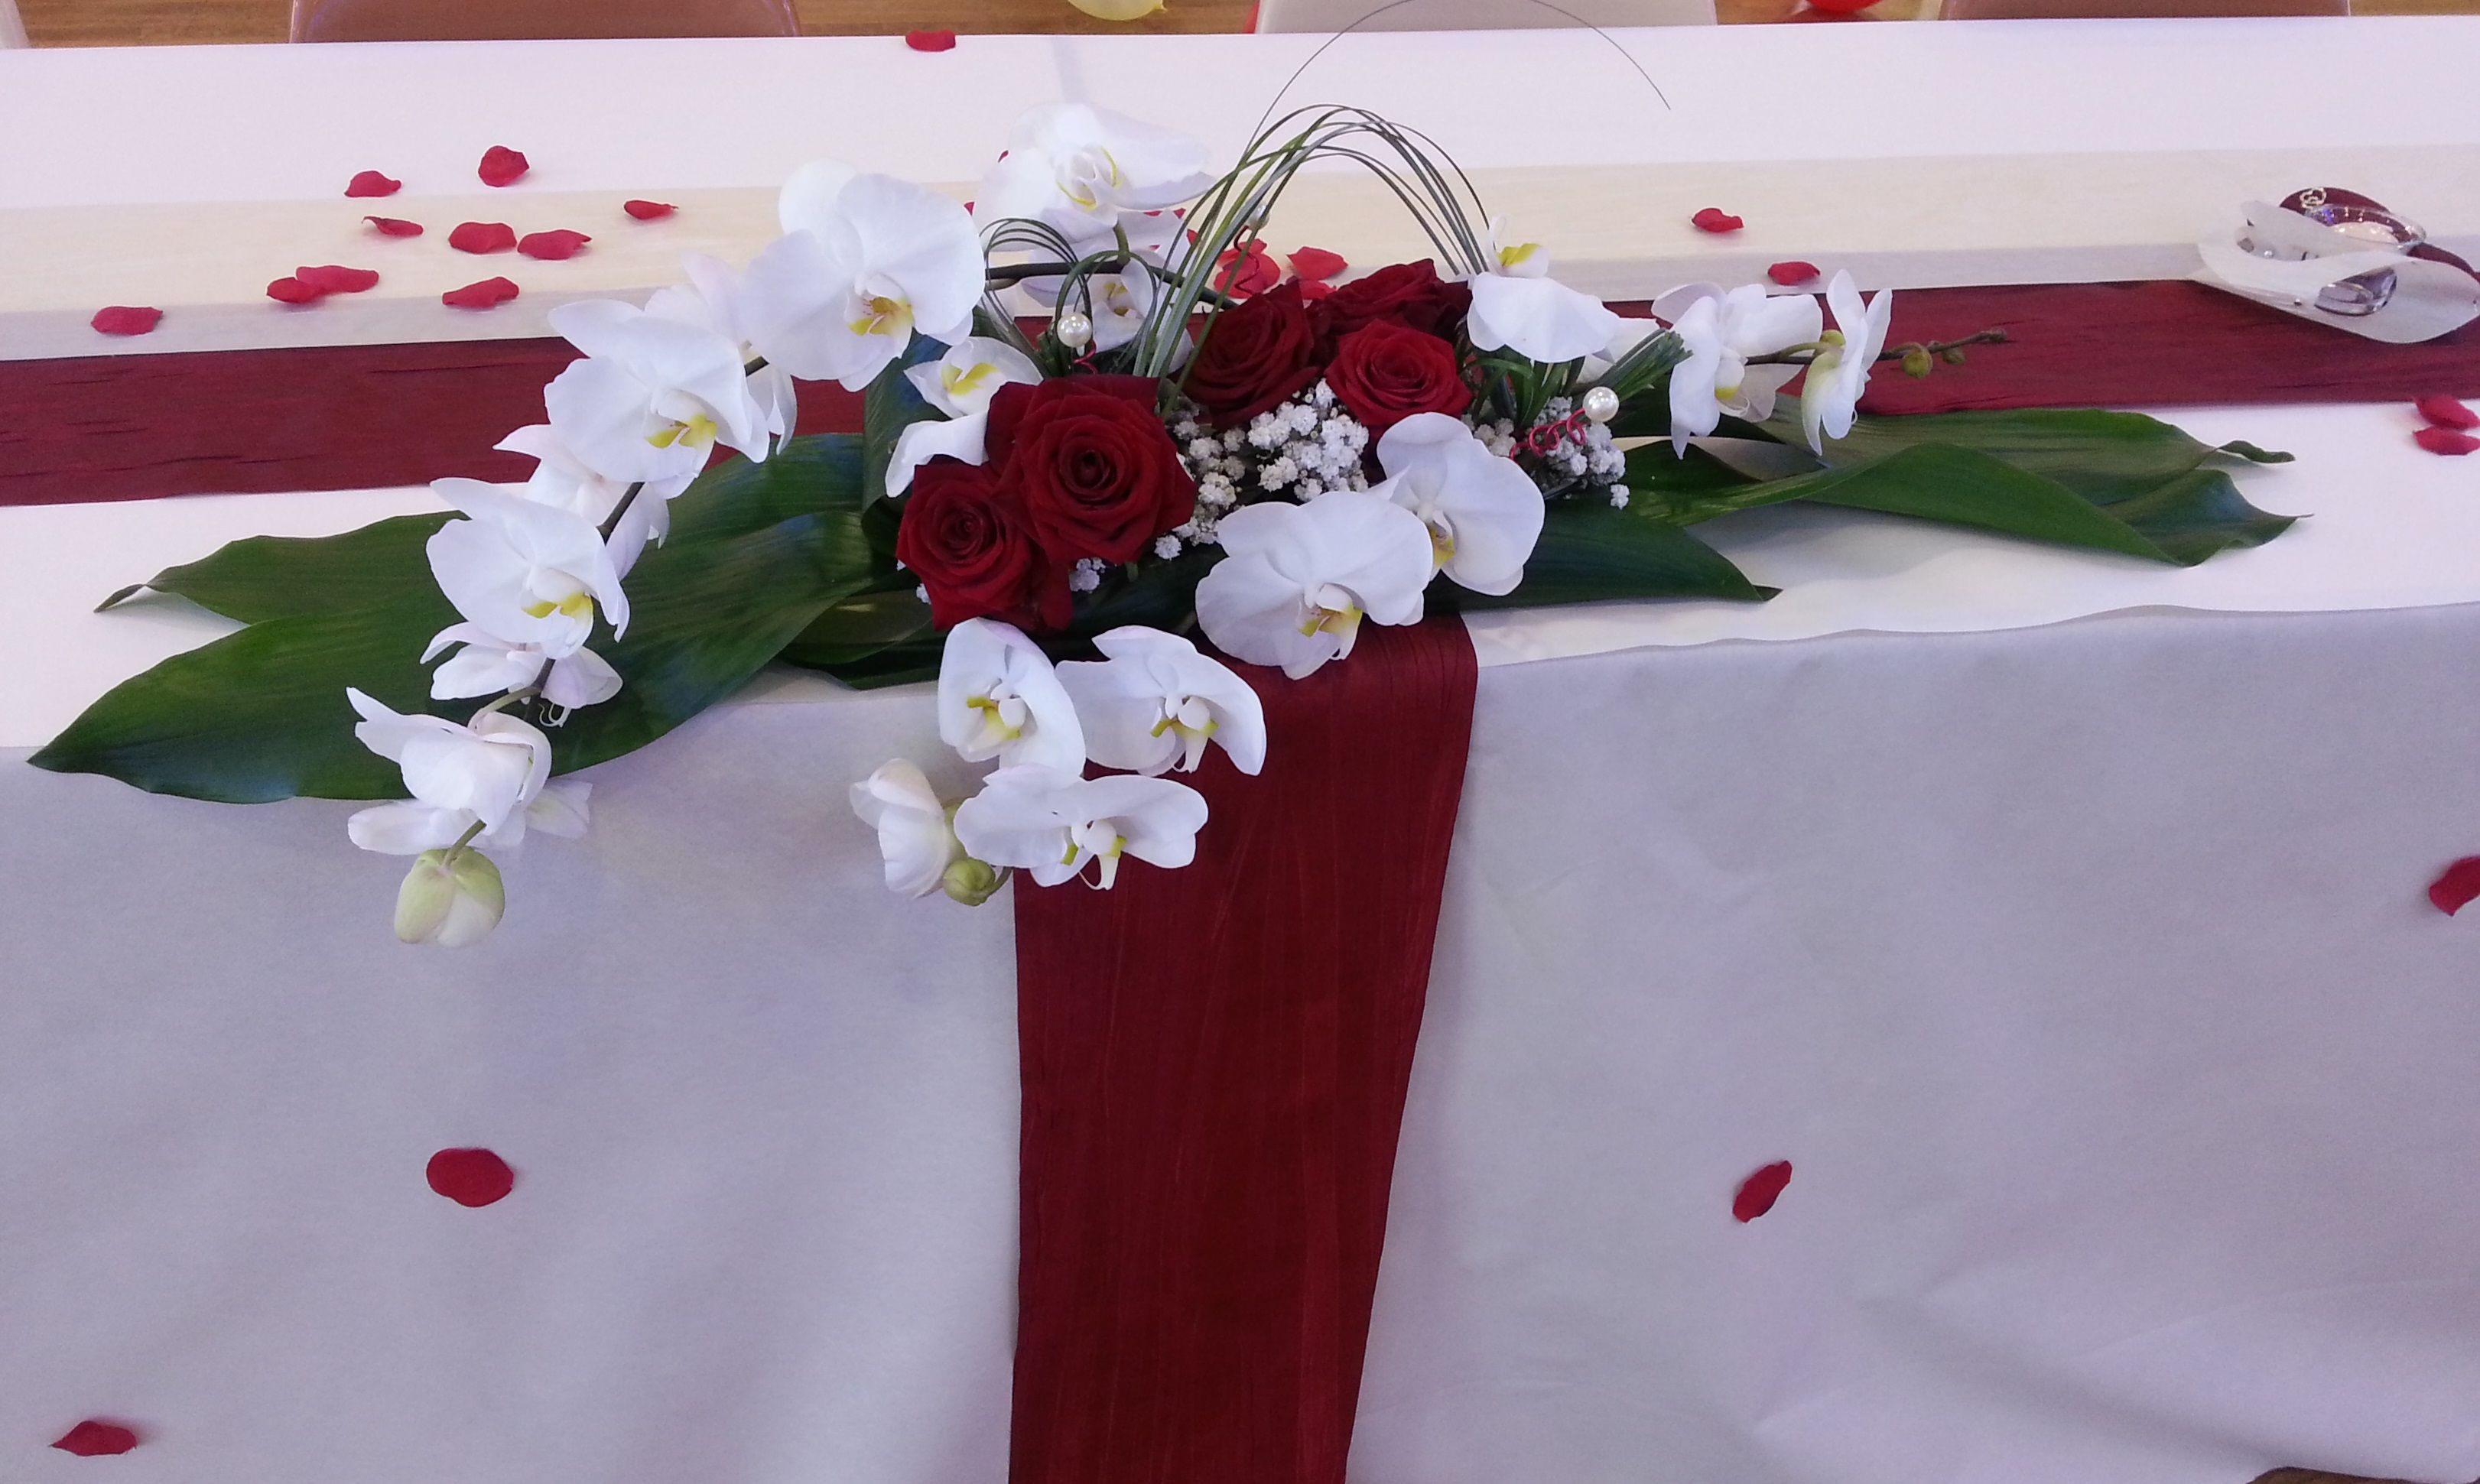 Centre de table roses rouges et orchid es d co mariage pinterest centres de table rose - Centre de table mariage rouge et blanc ...